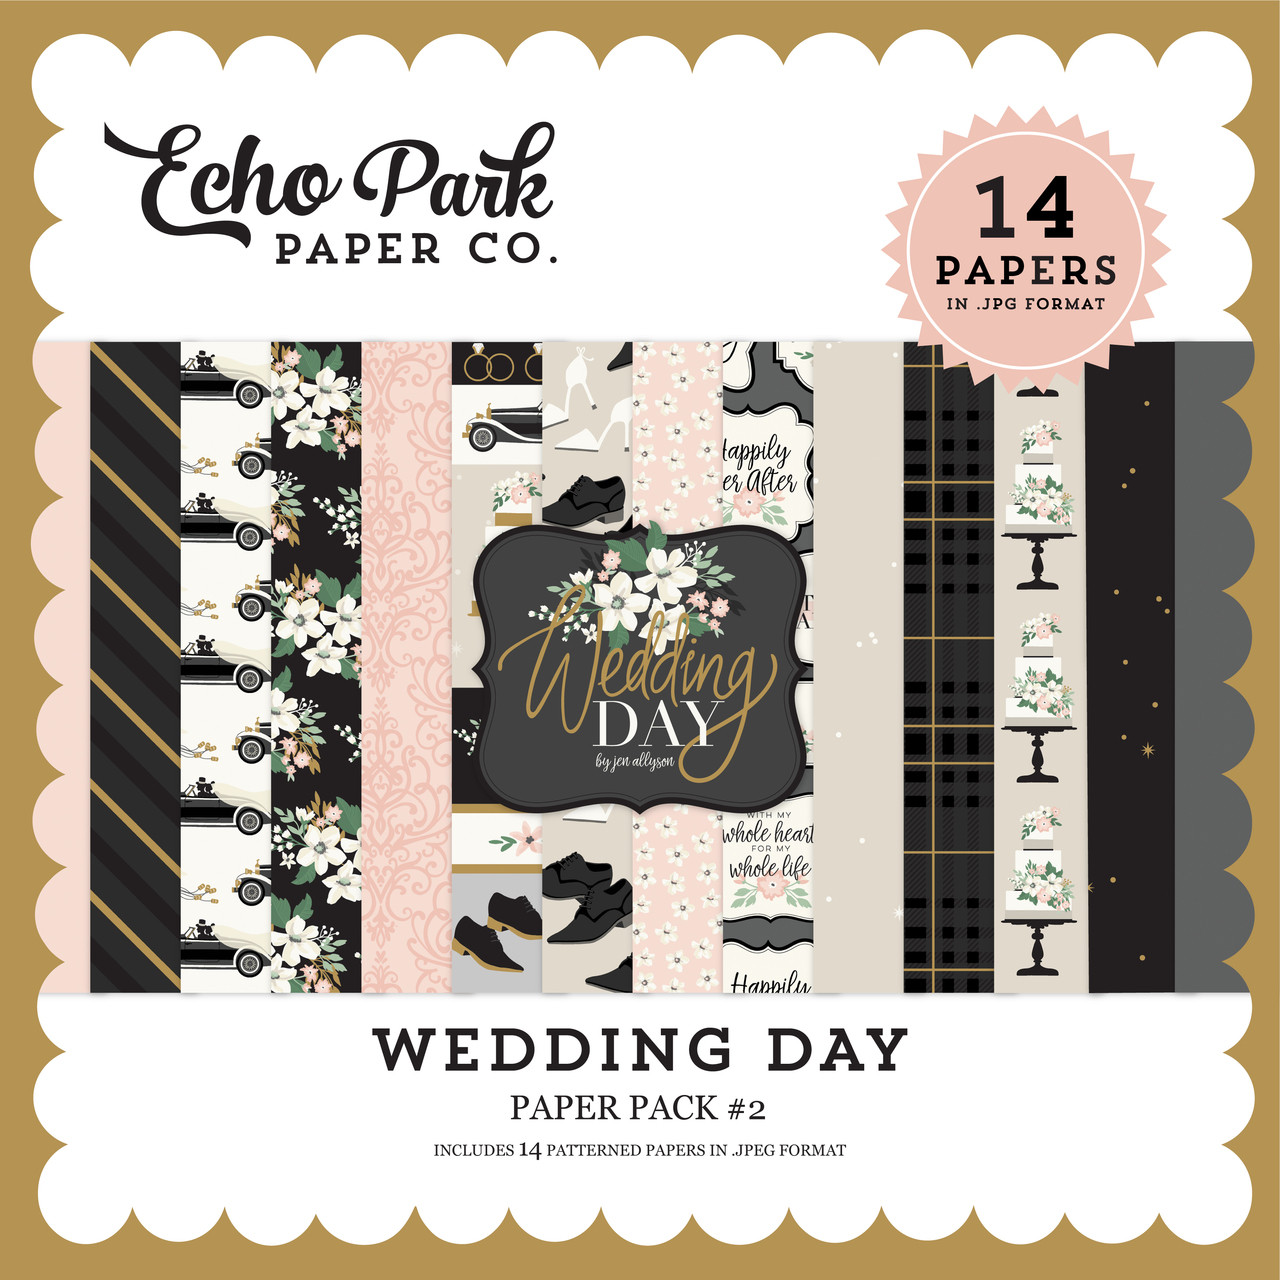 Wedding Day Paper Pack #2